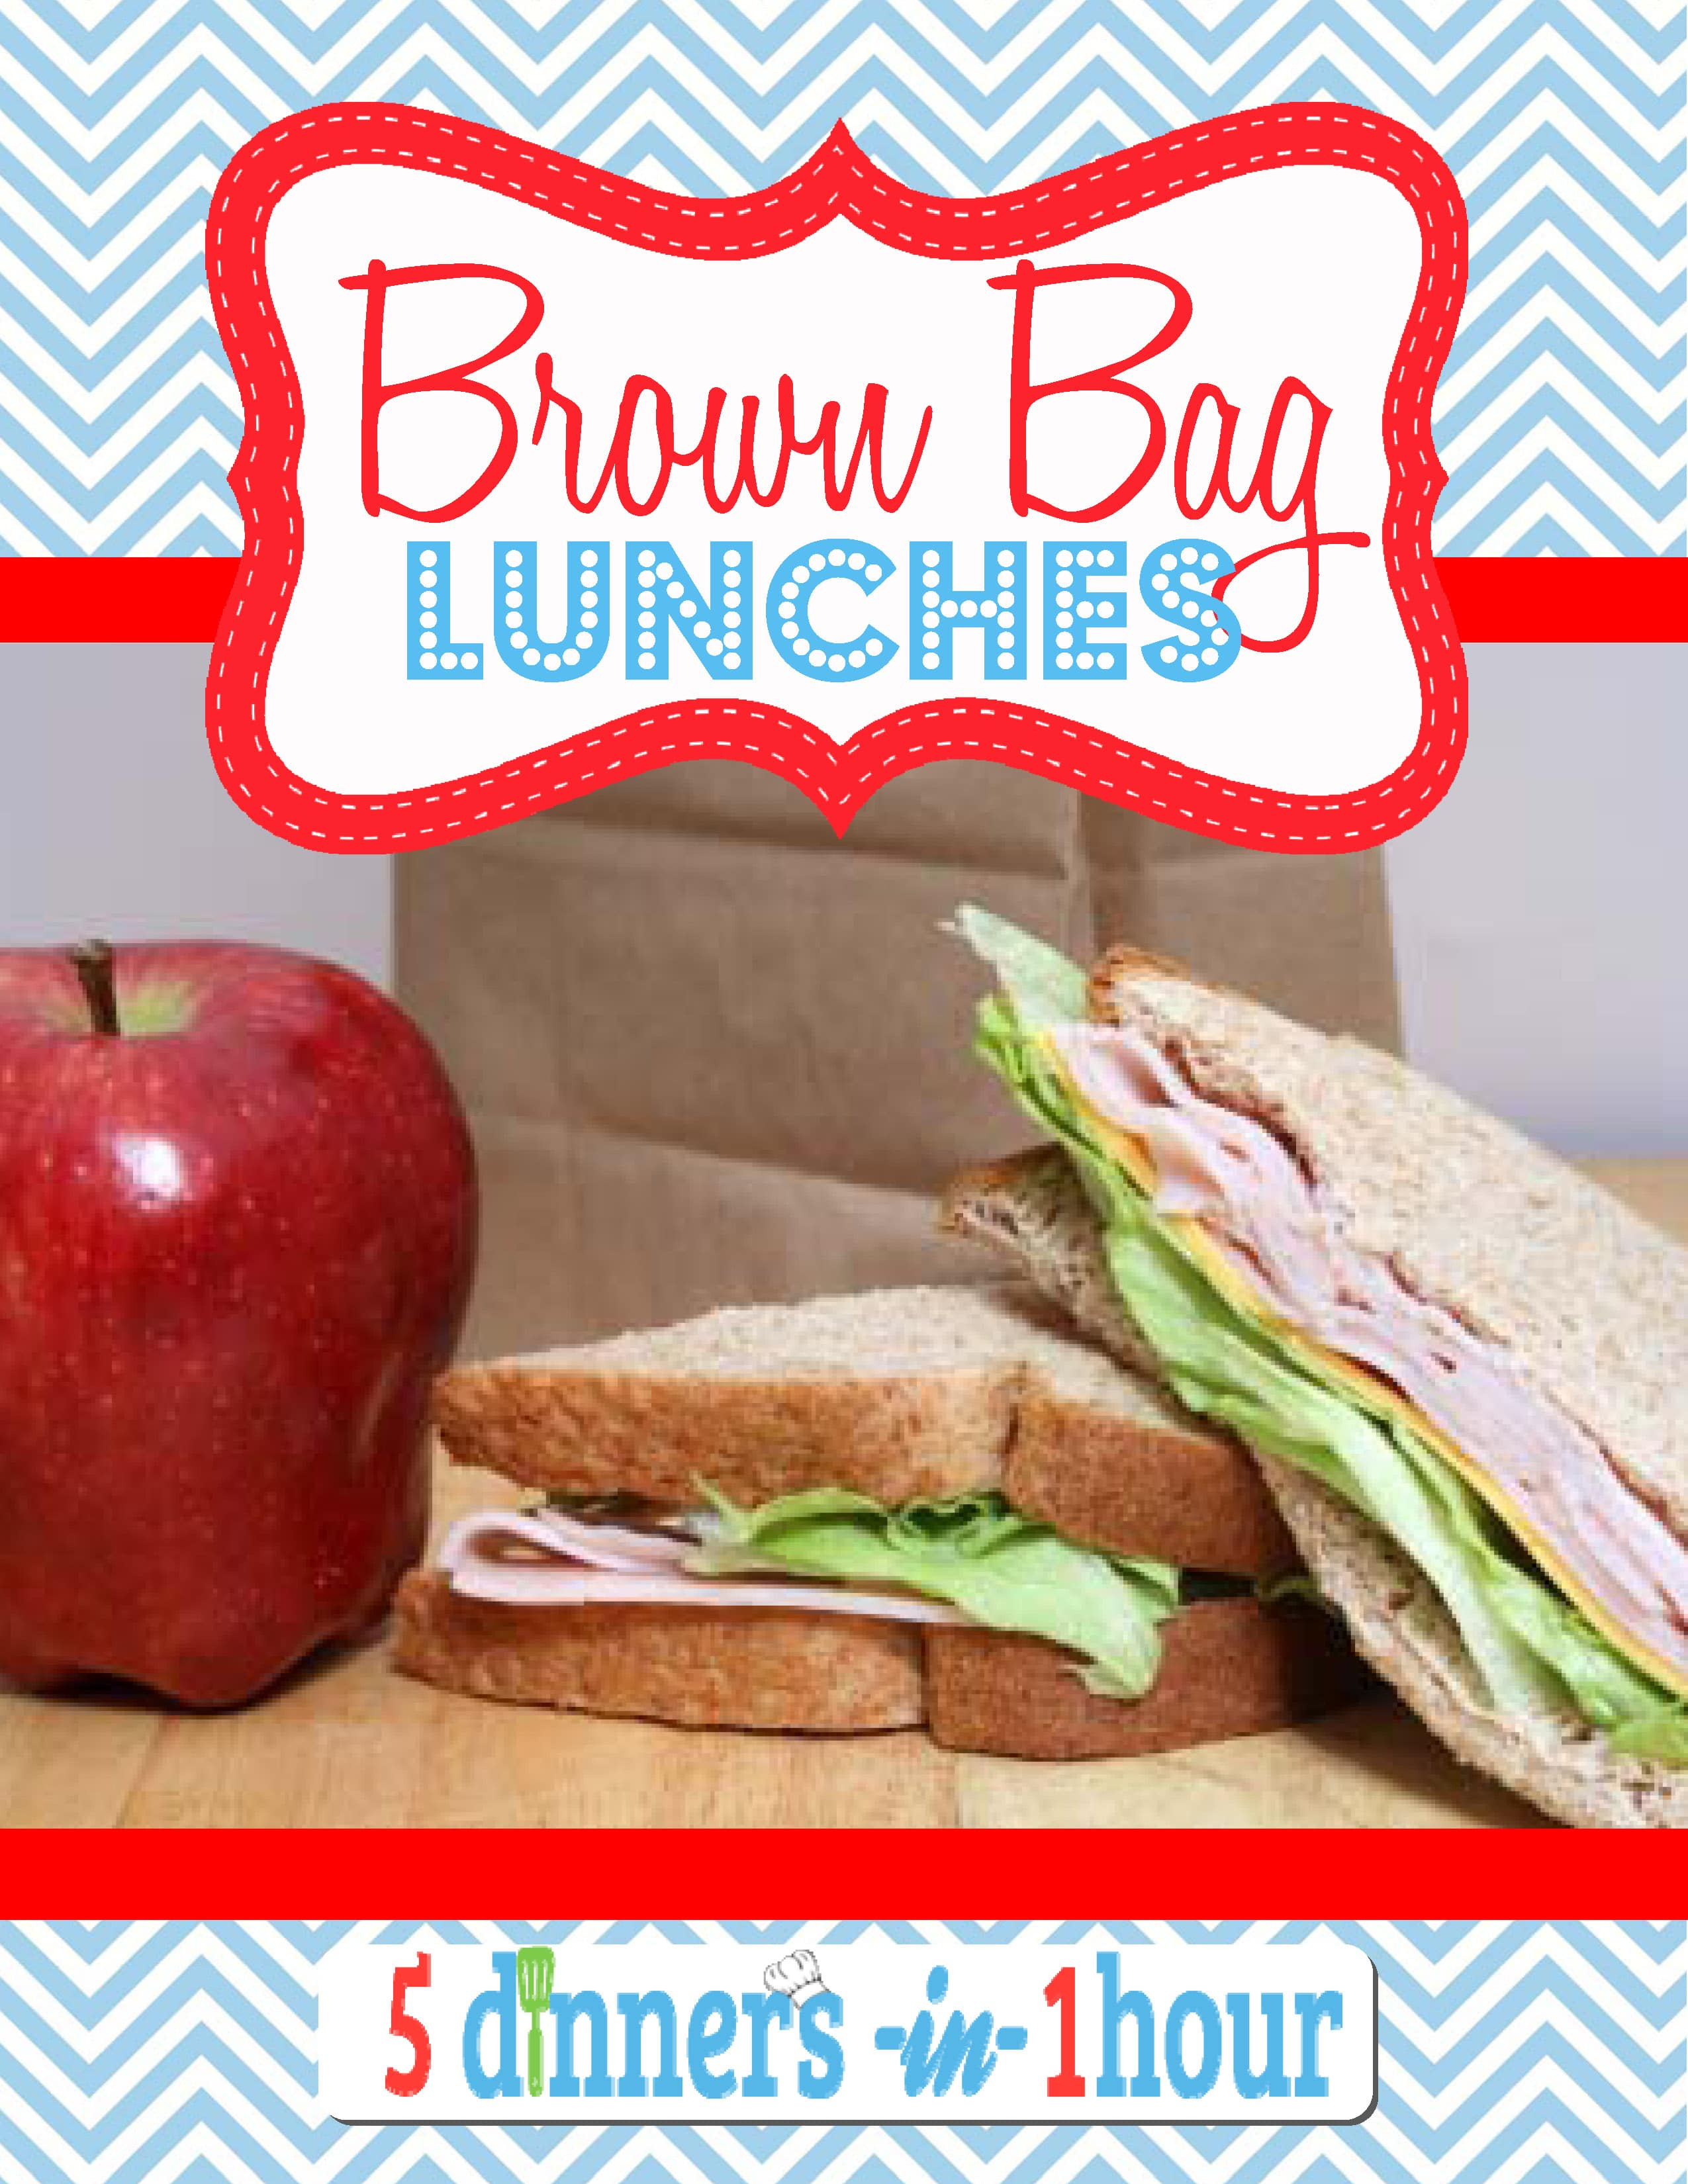 Brown Bag Lunch Menu - Vol. 1